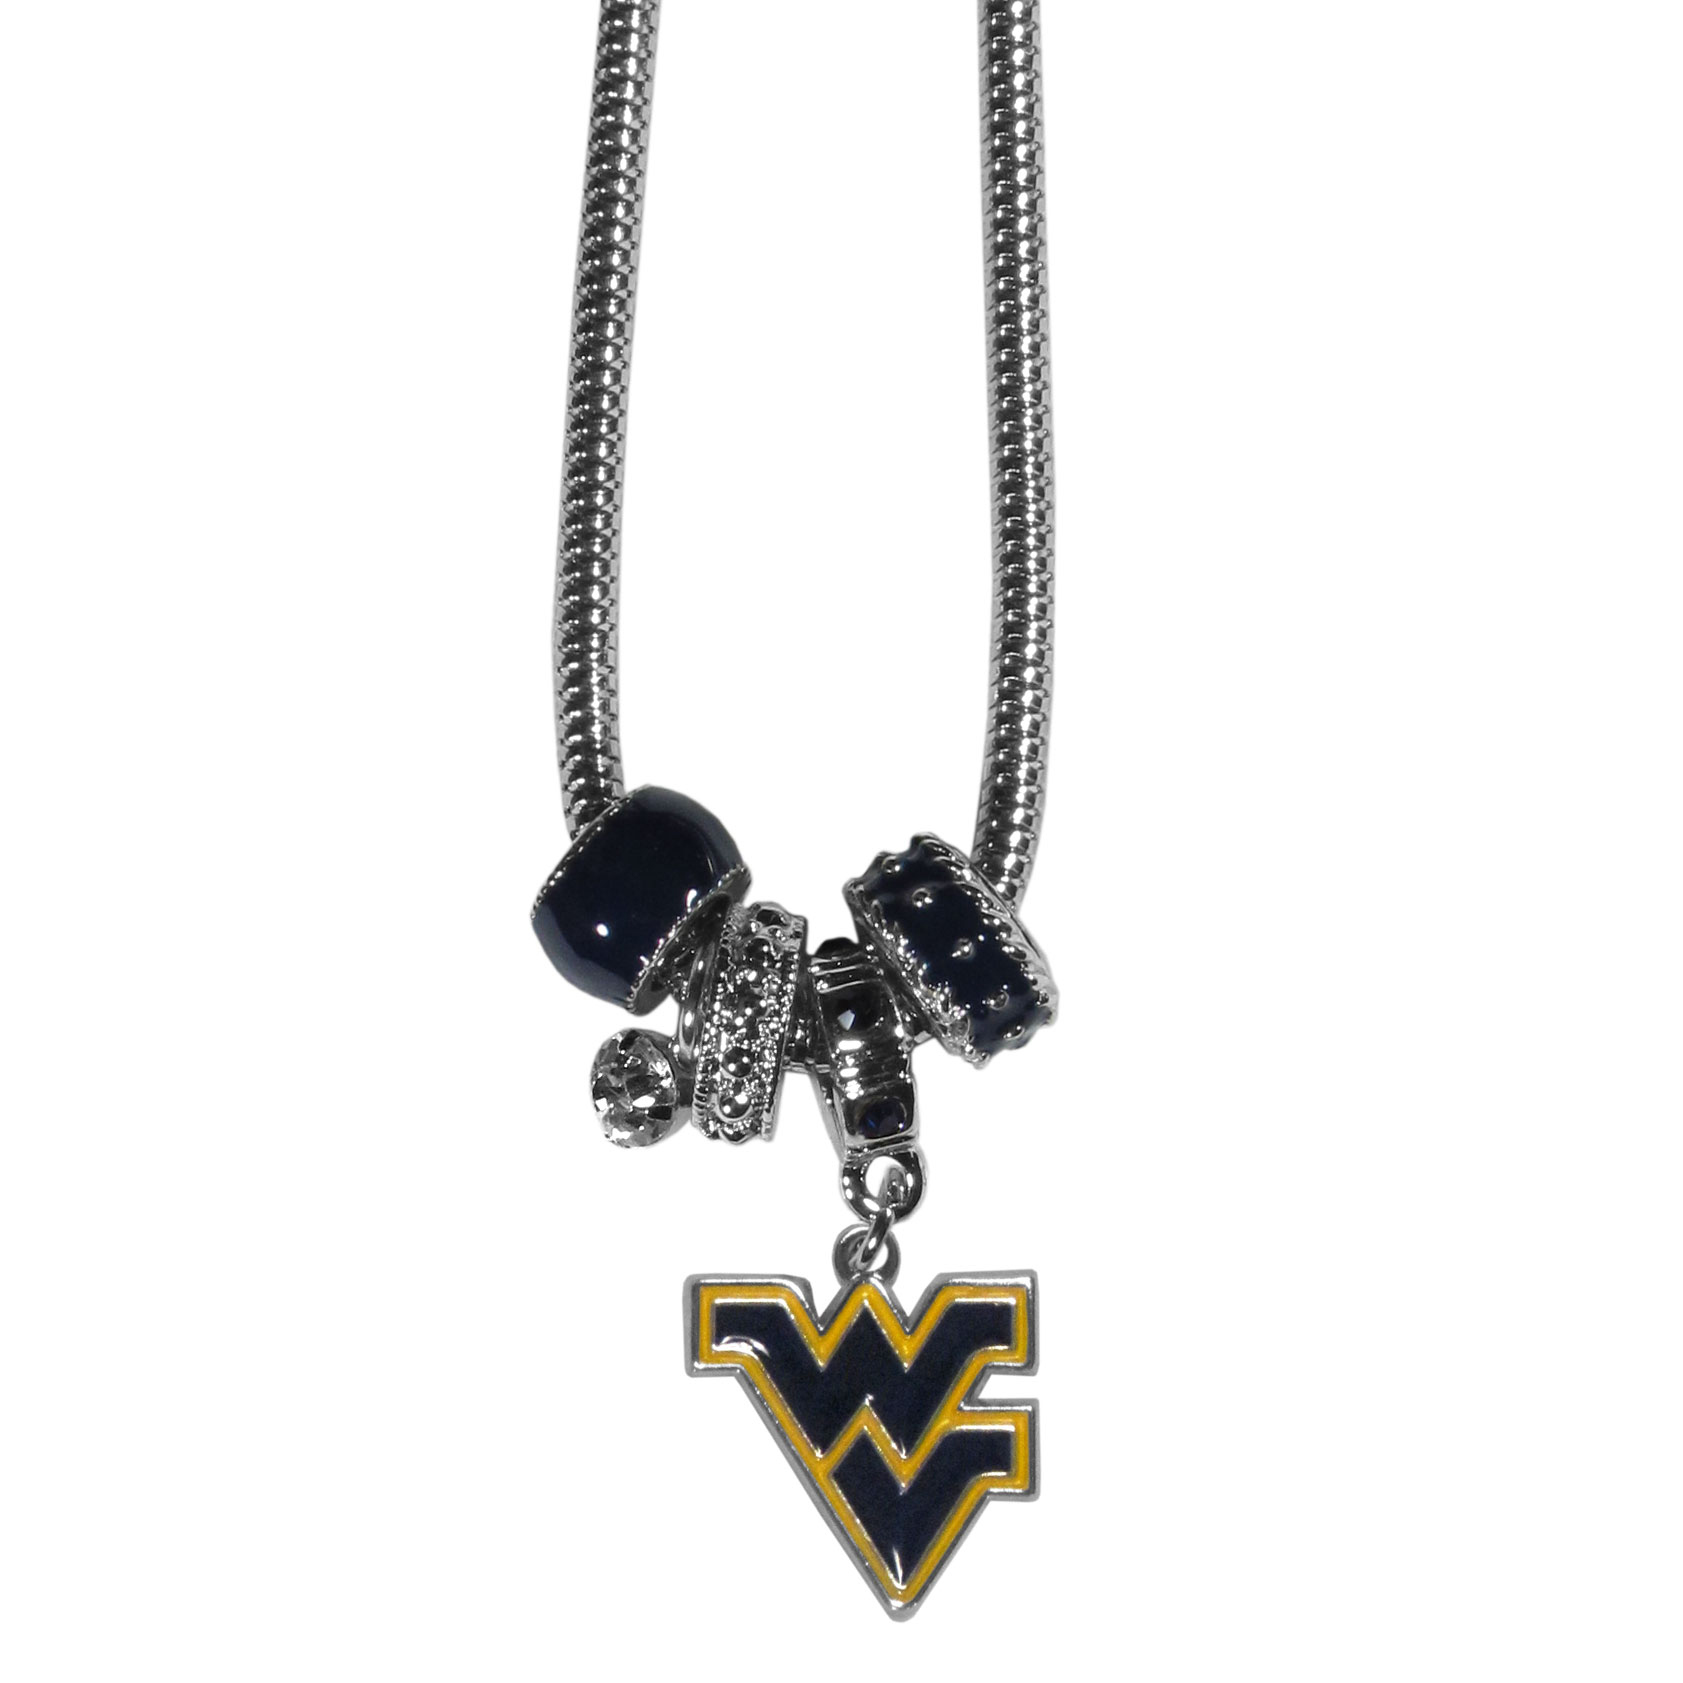 West Virginia Mountaineers Euro Bead Necklace - We have combined the wildly popular Euro style beads with your favorite team to create our West Virginia Mountaineers bead necklace. The 18 inch snake chain features 4 Euro beads with enameled team colors and rhinestone accents with a high polish, nickel free charm and rhinestone charm. Perfect way to show off your team pride. Thank you for shopping with CrazedOutSports.com